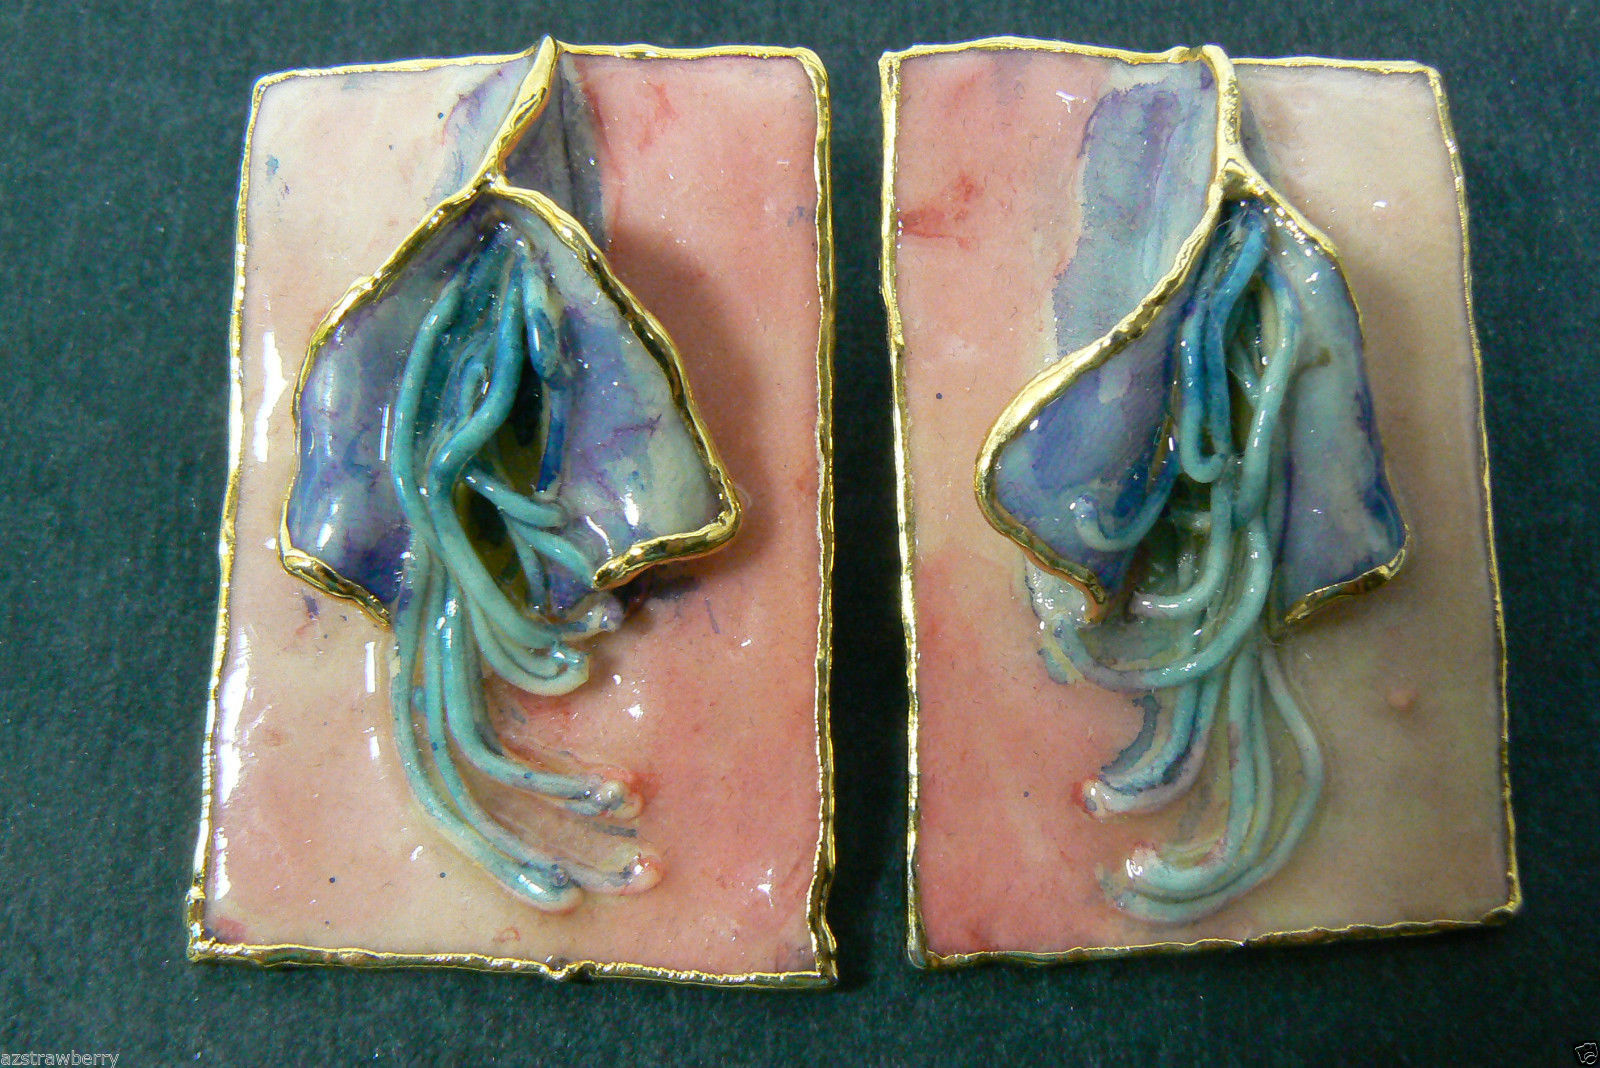 Lacombe 1980 signed Retro Abstract Modern Whimsy floral figural Earrings Large